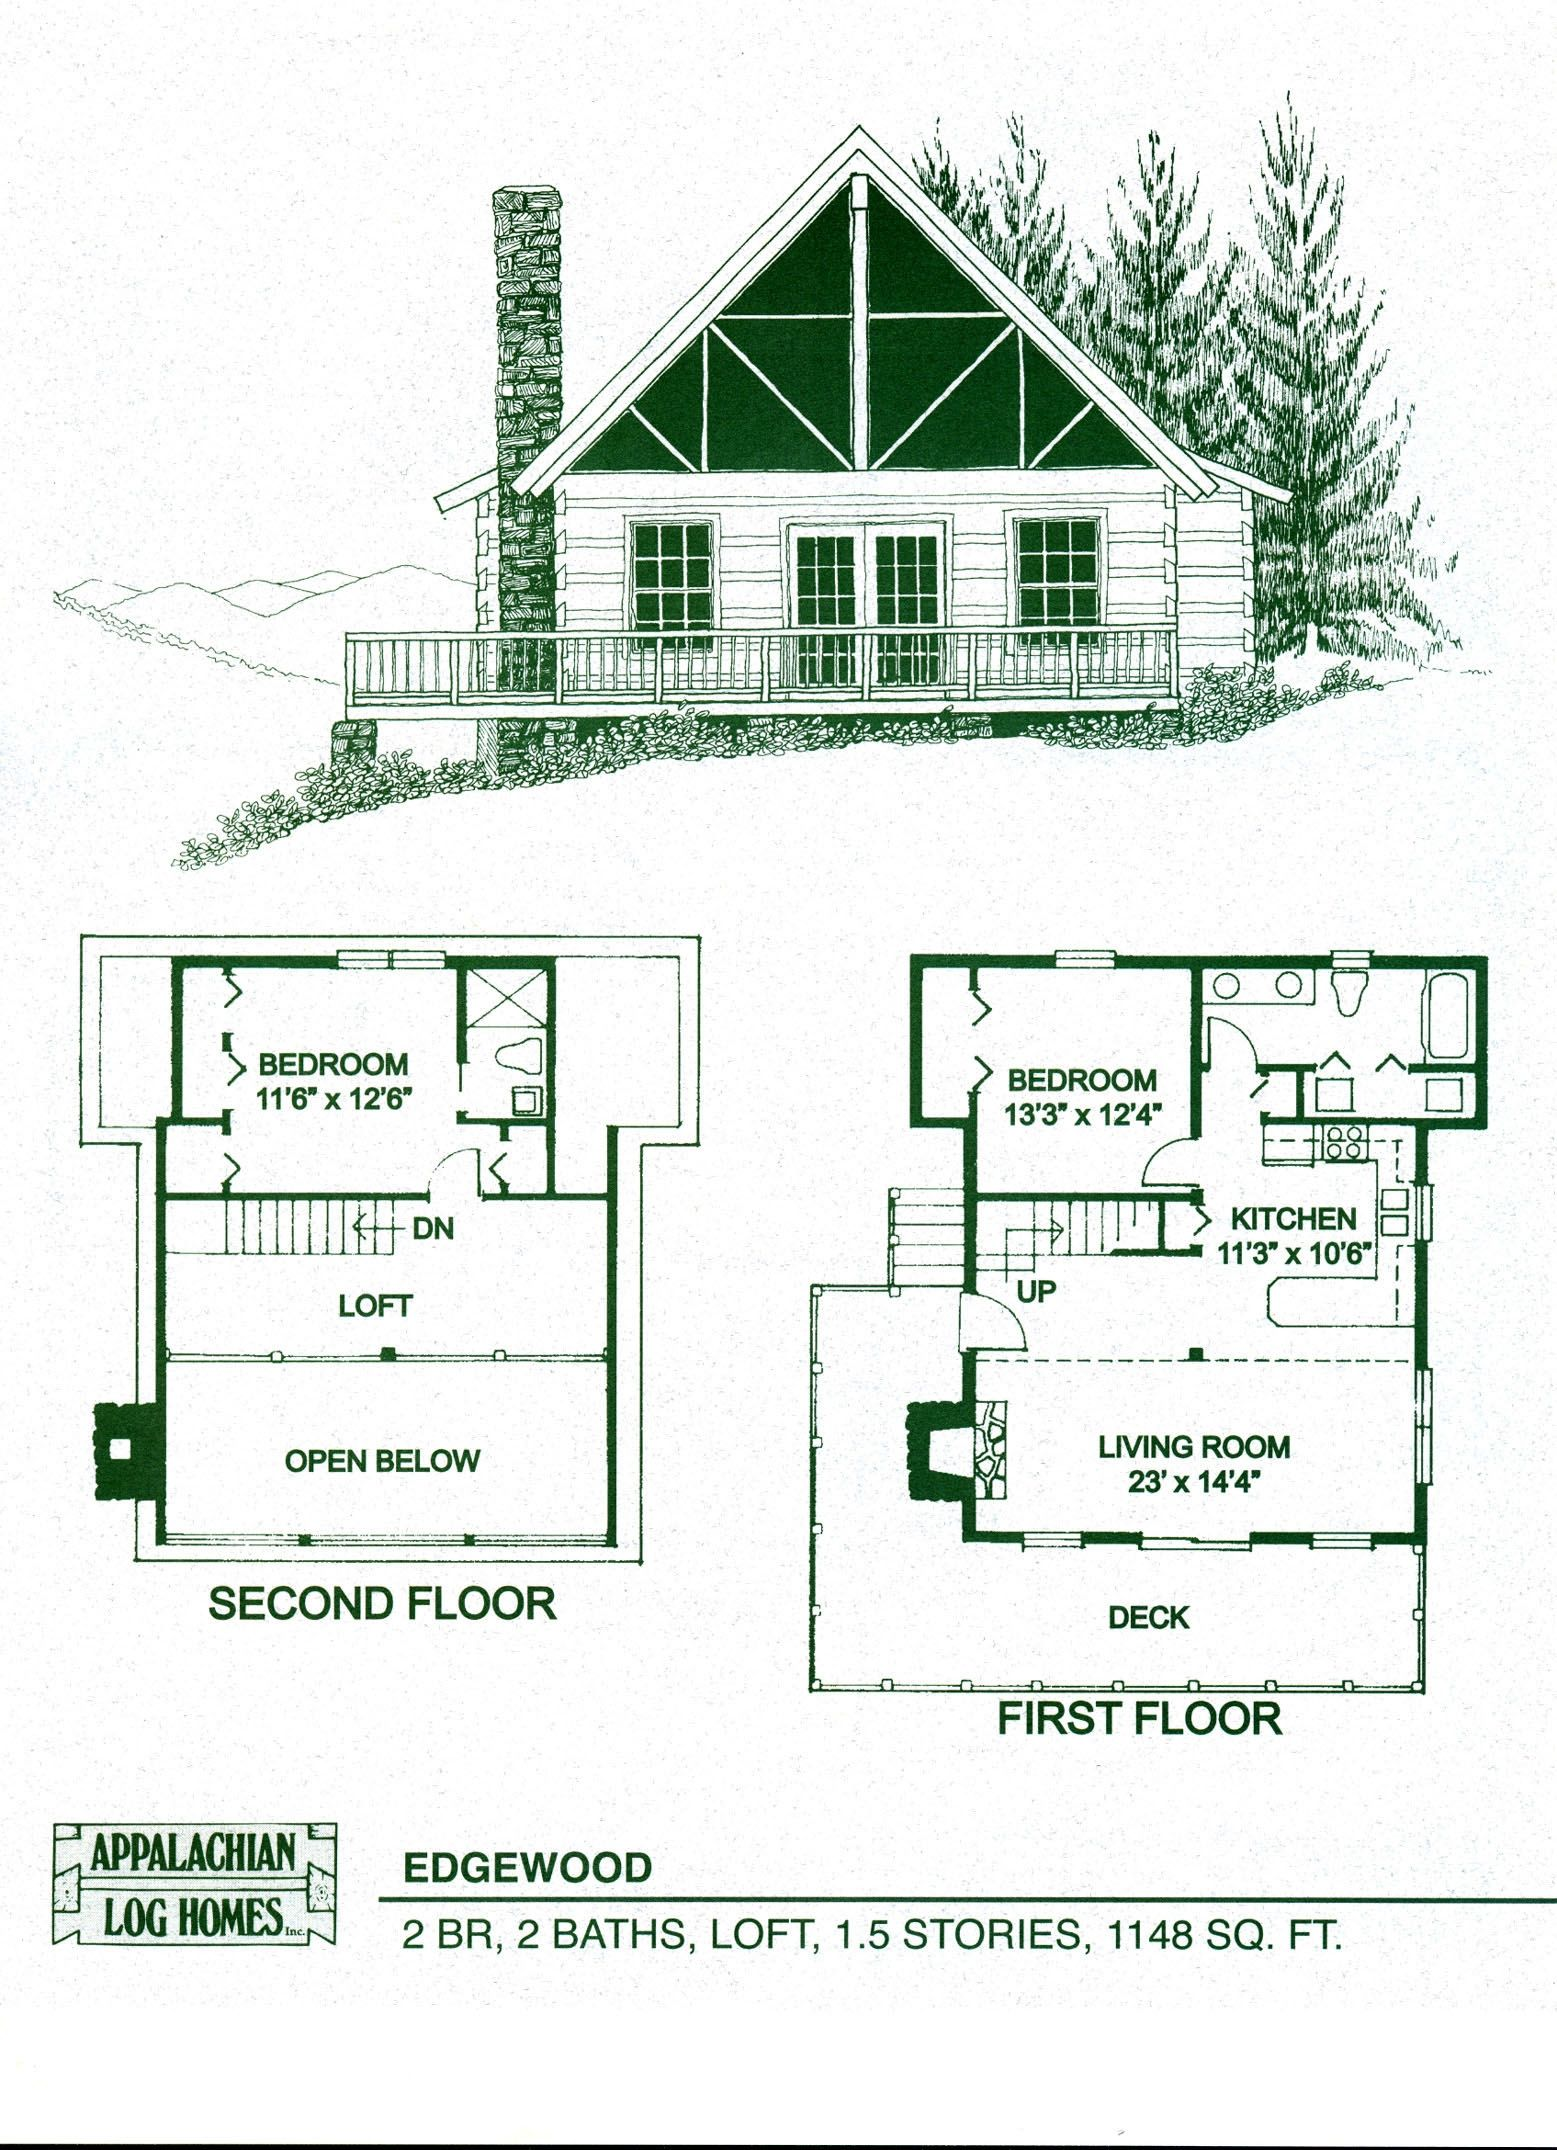 Floor Plans For Small Log Cabins Log Cabin Floor Plans Log Cabin Plans Loft Floor Plans